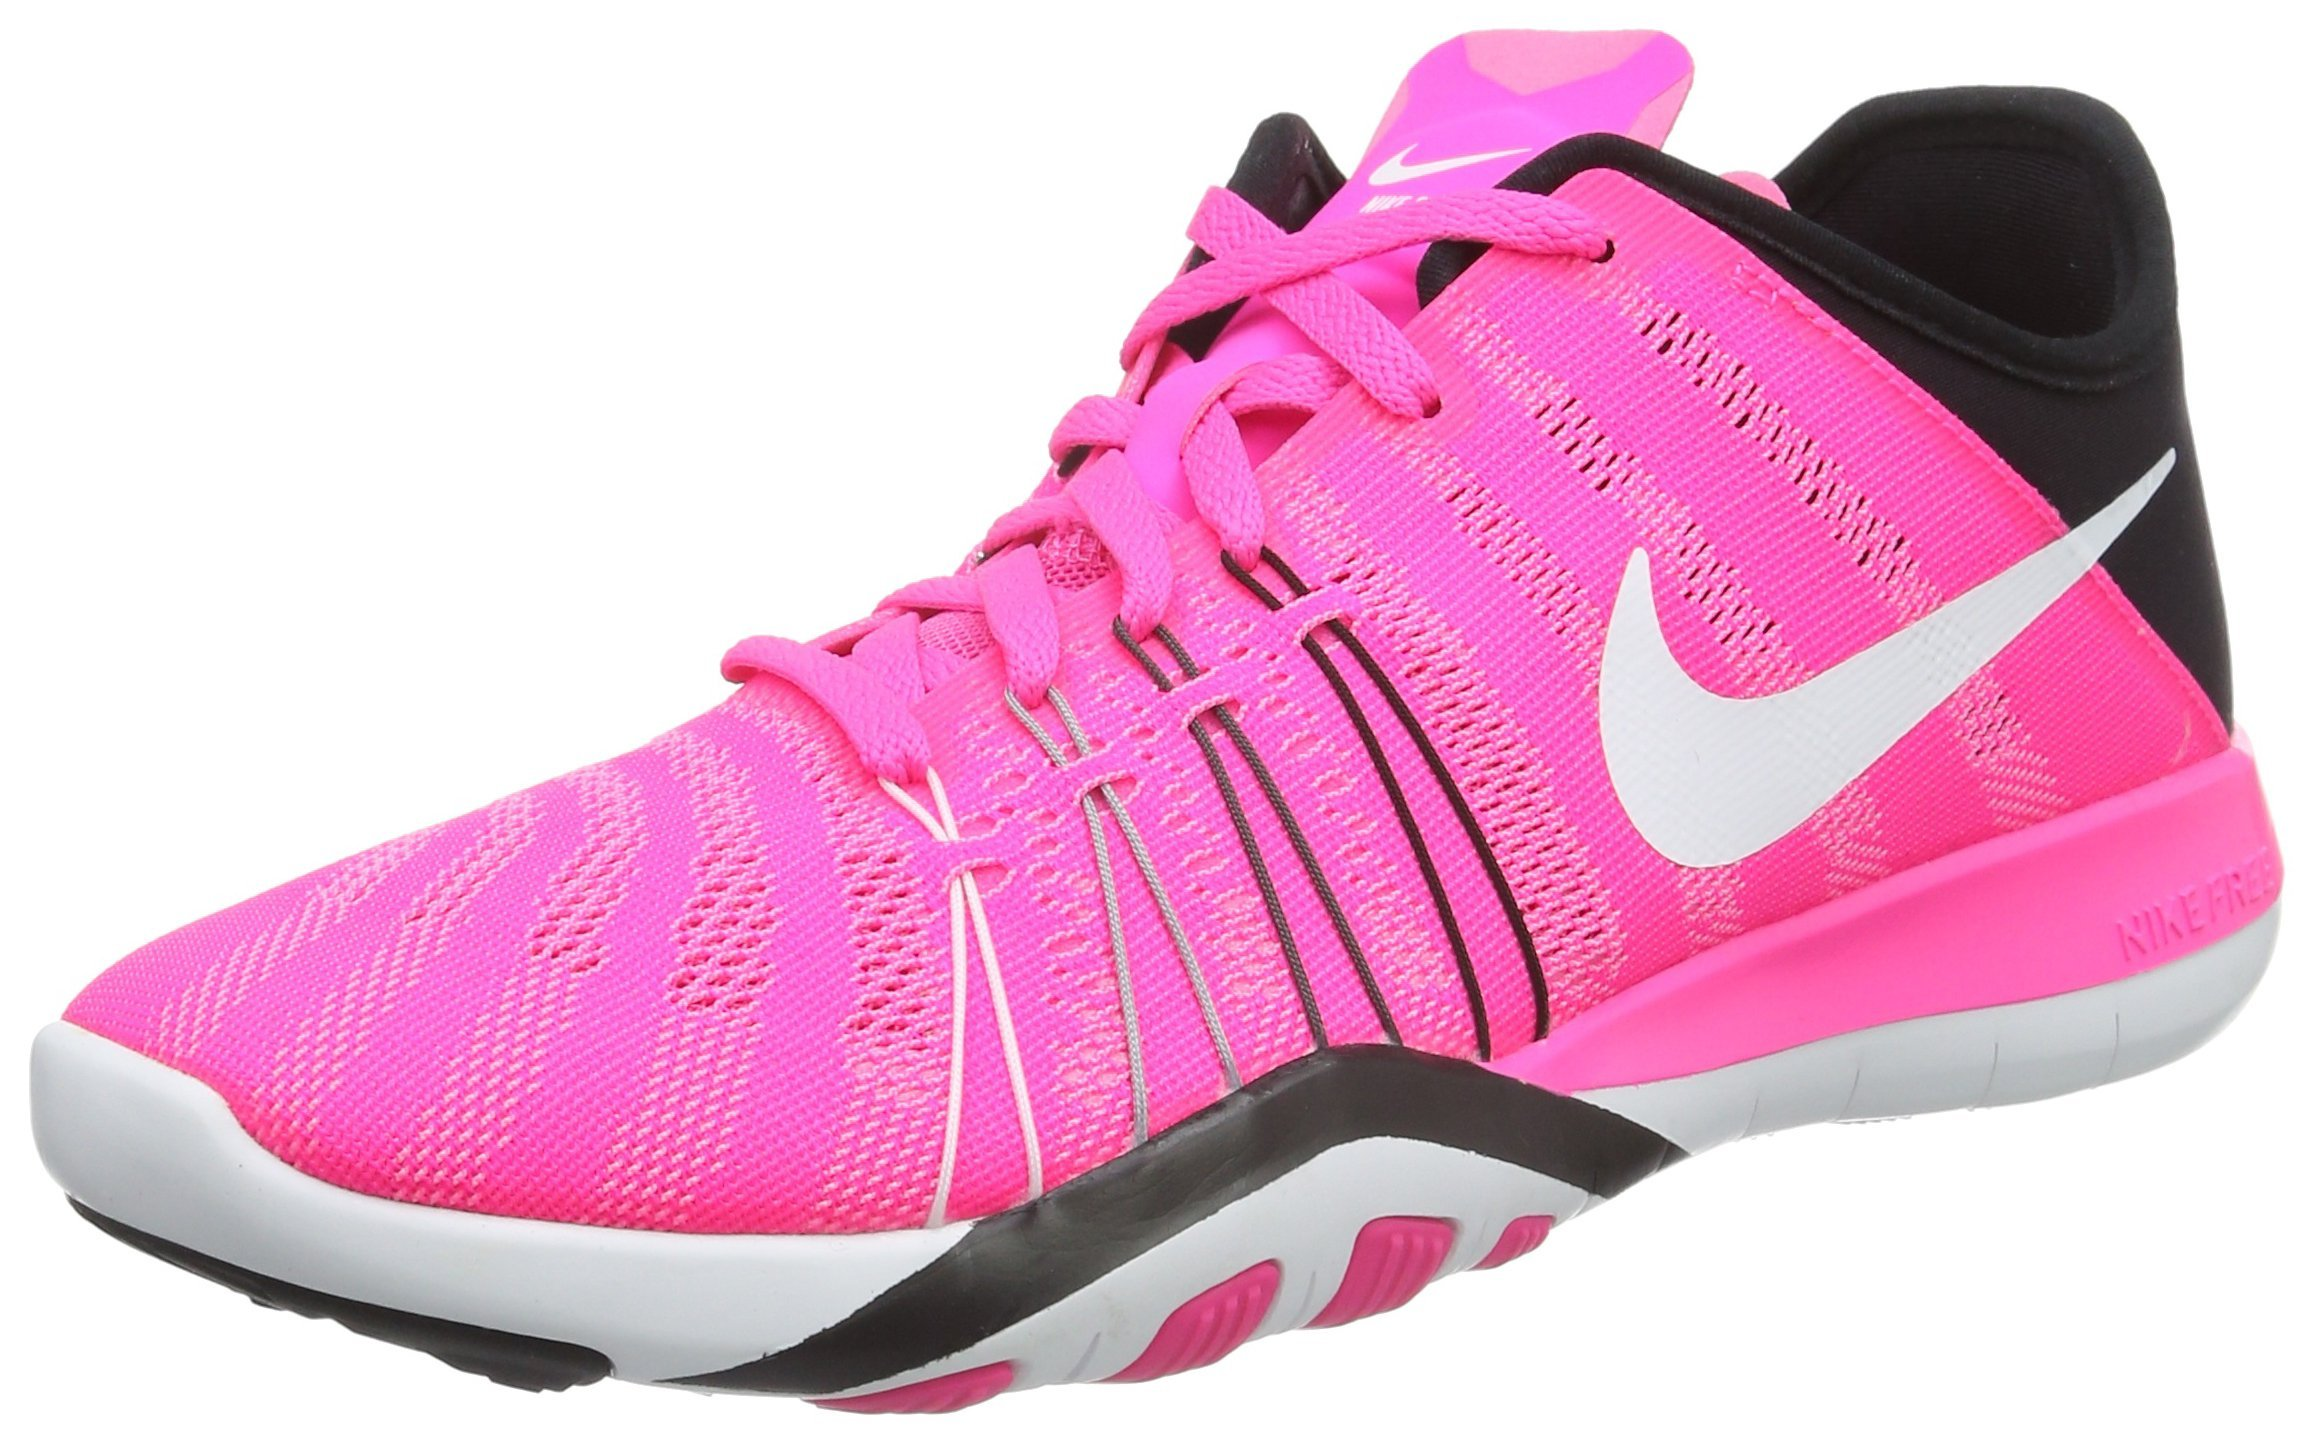 d433a7753f69 Galleon - NIKE Free TR 6 Women s Shoes Pink Blast Black White 833413-600 (8  B(M) US)